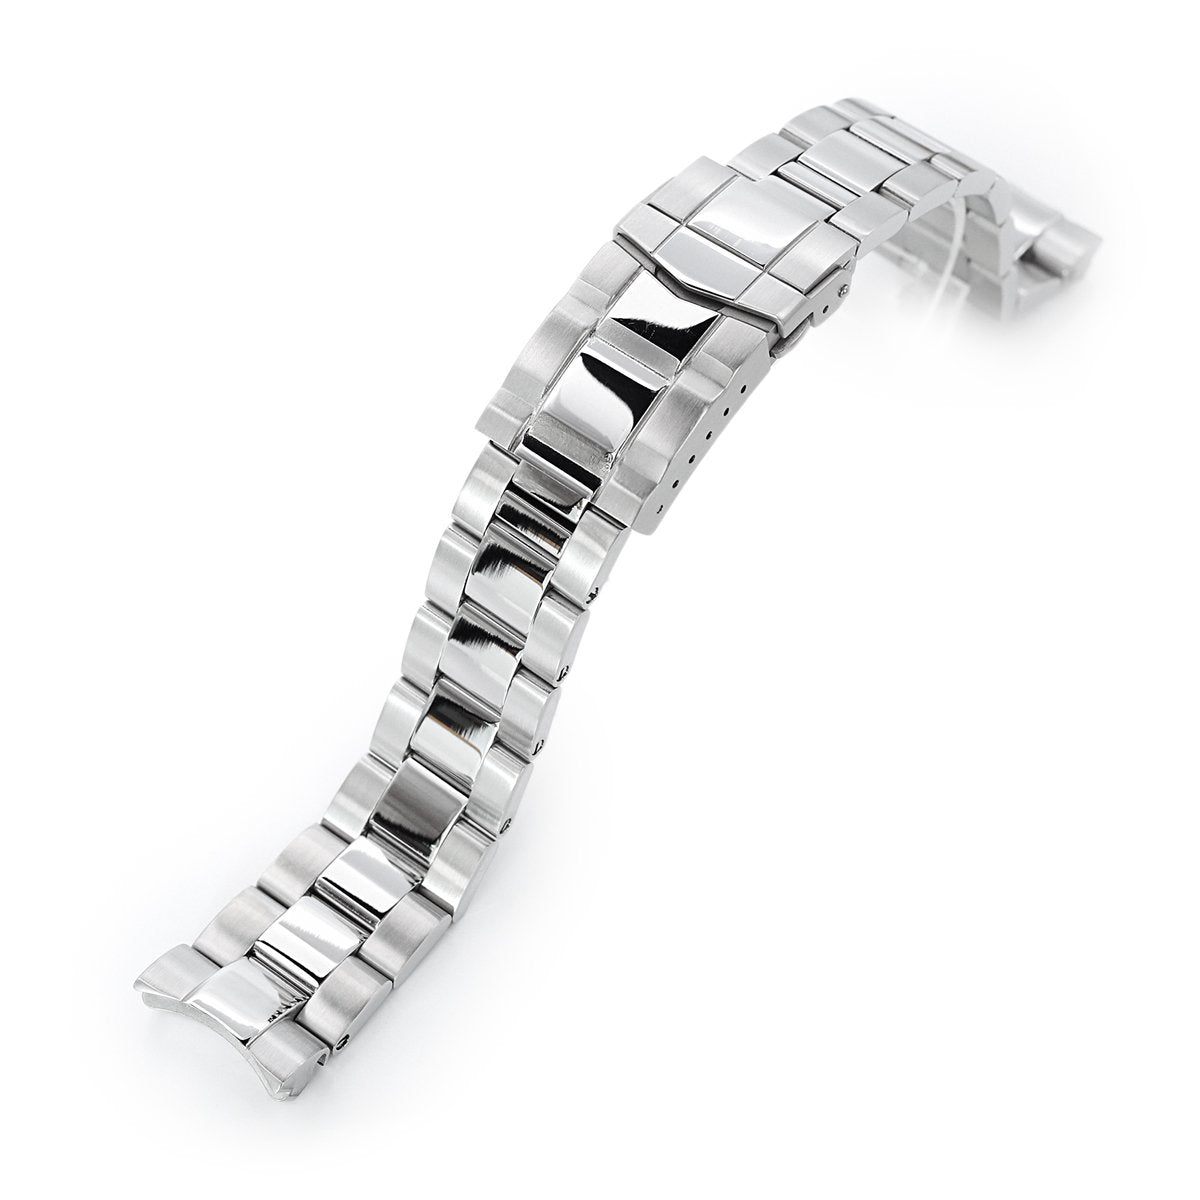 20mm Super-O Boyer 316L Stainless Steel Watch Bracelet for Seiko Mini Turtles SRPC35 SUB Clasp Polished & Brushed Strapcode Watch Bands